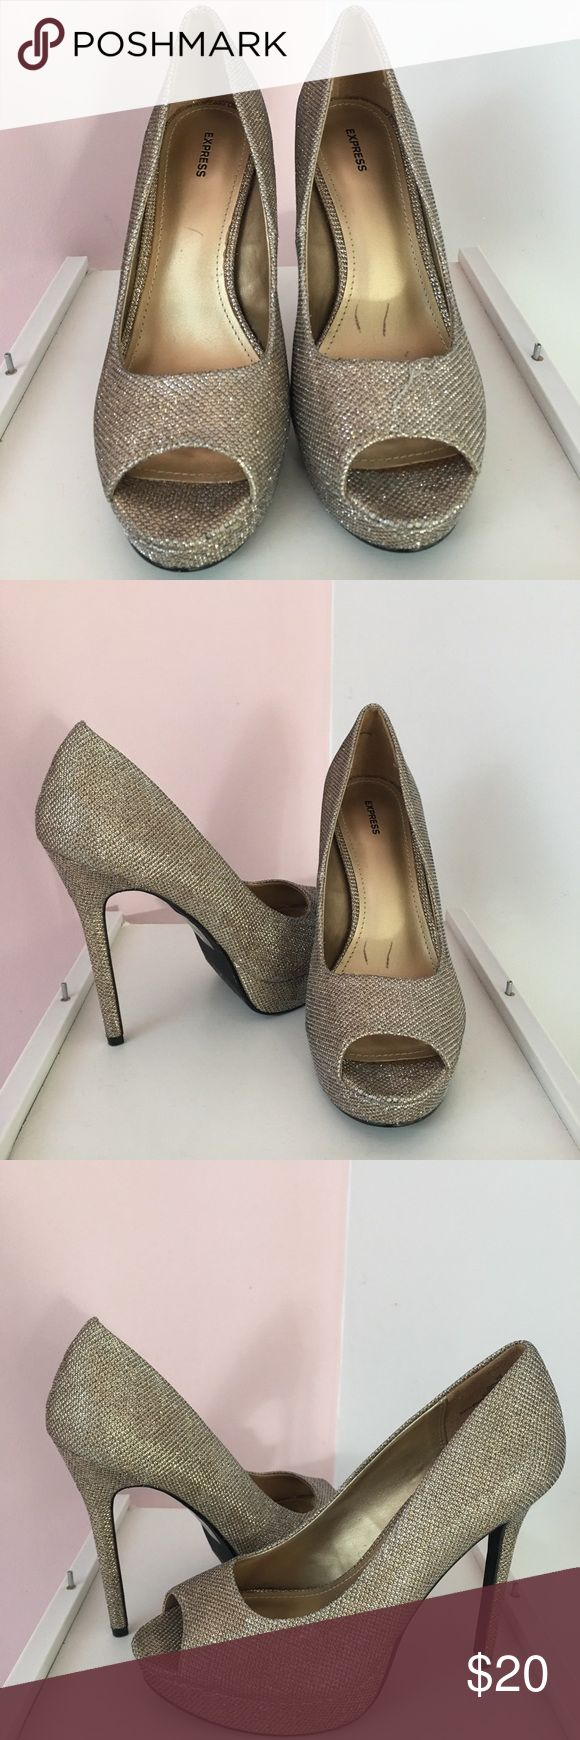 EXPRESS SHOES -SIZE 9.5 Pretty high heels from the Express store.  Worn once or twice. Size 9.5 Express Shoes Heels